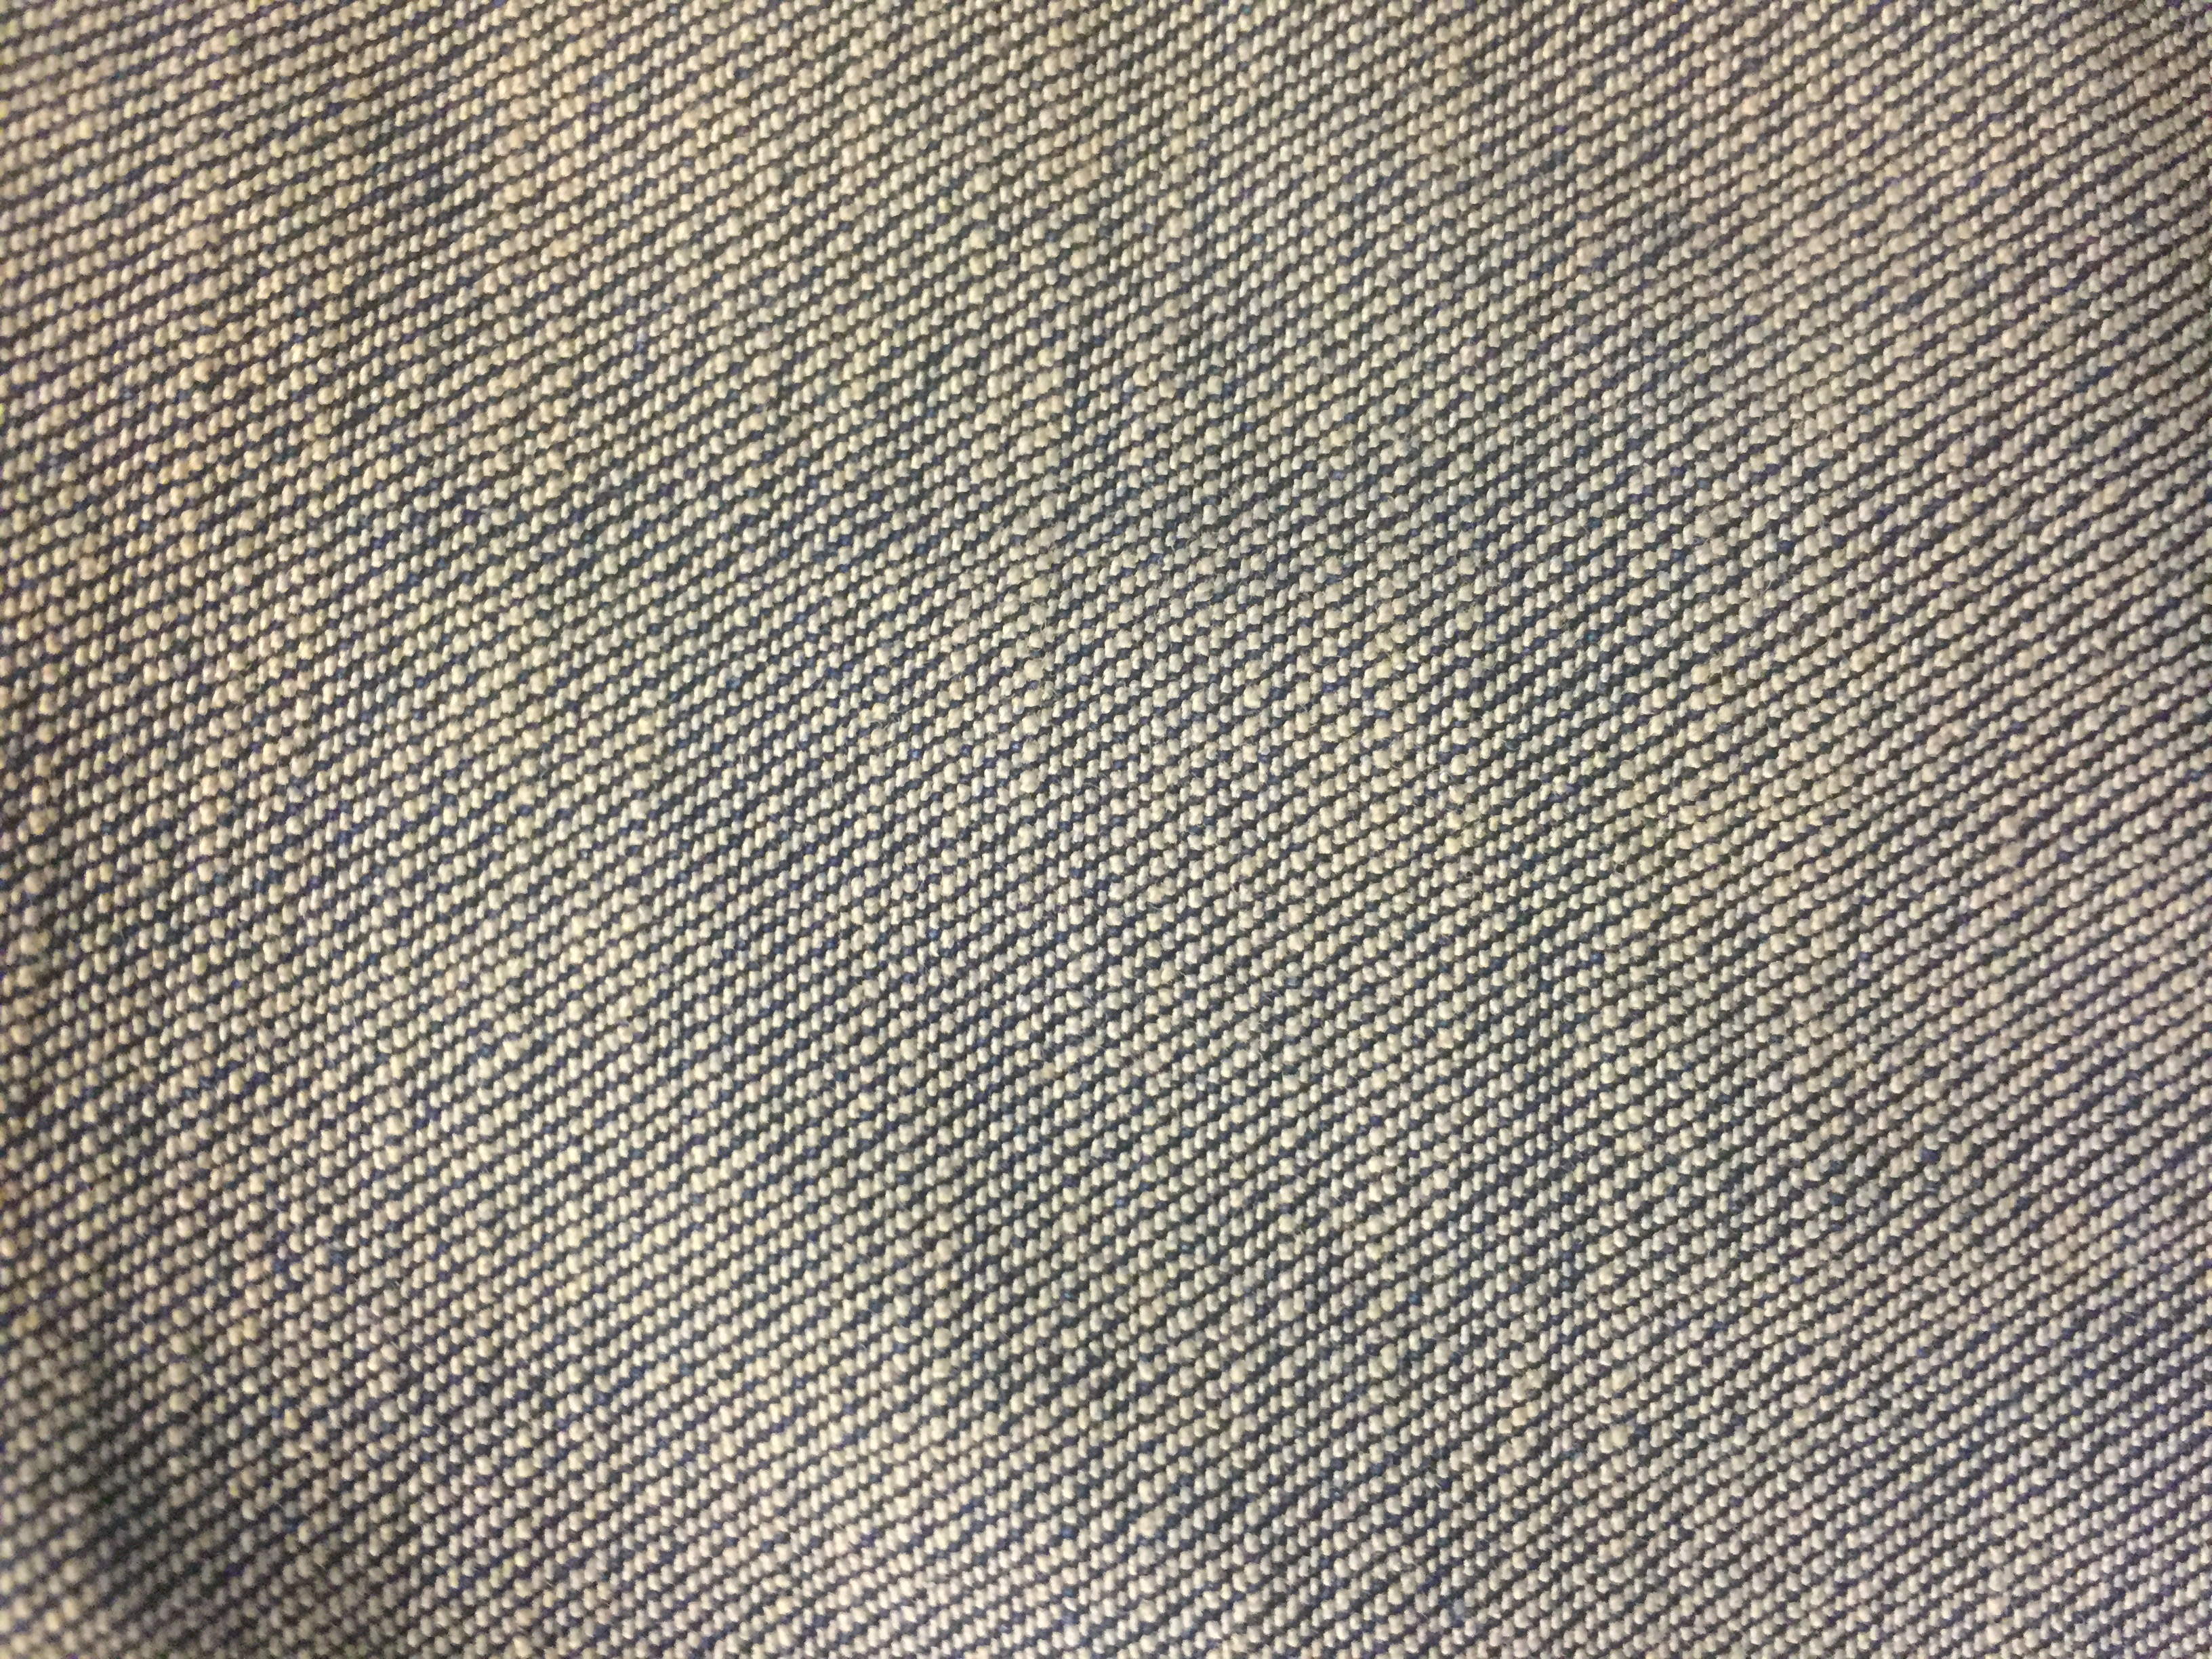 Rough Close Up Of Blue And White Fabric Free Textures